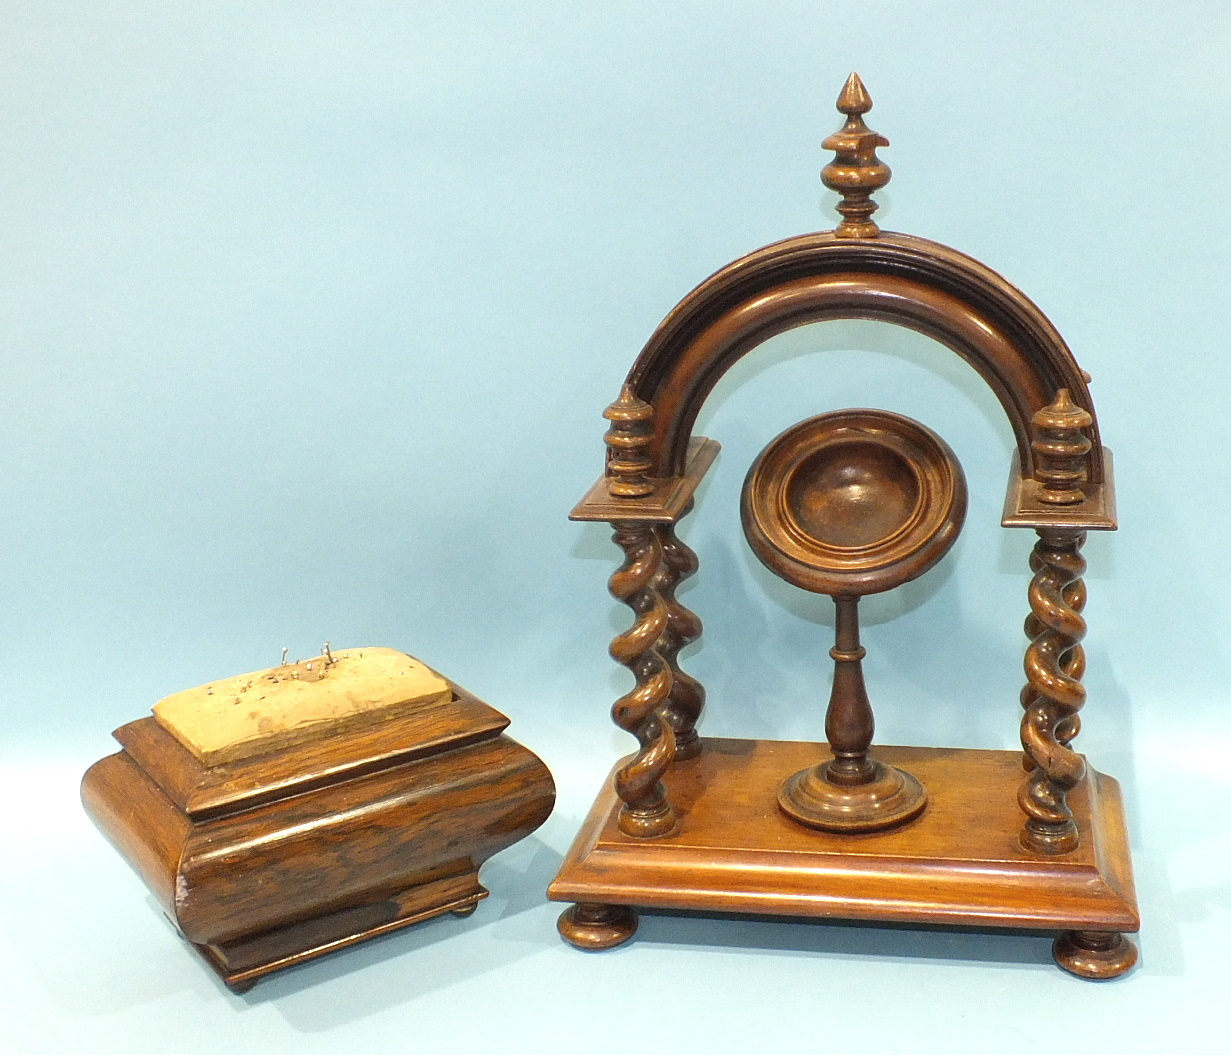 Lot 241 - A late-19th/early-20th century mahogany watch stand of arched portico shape, 36cm high and a